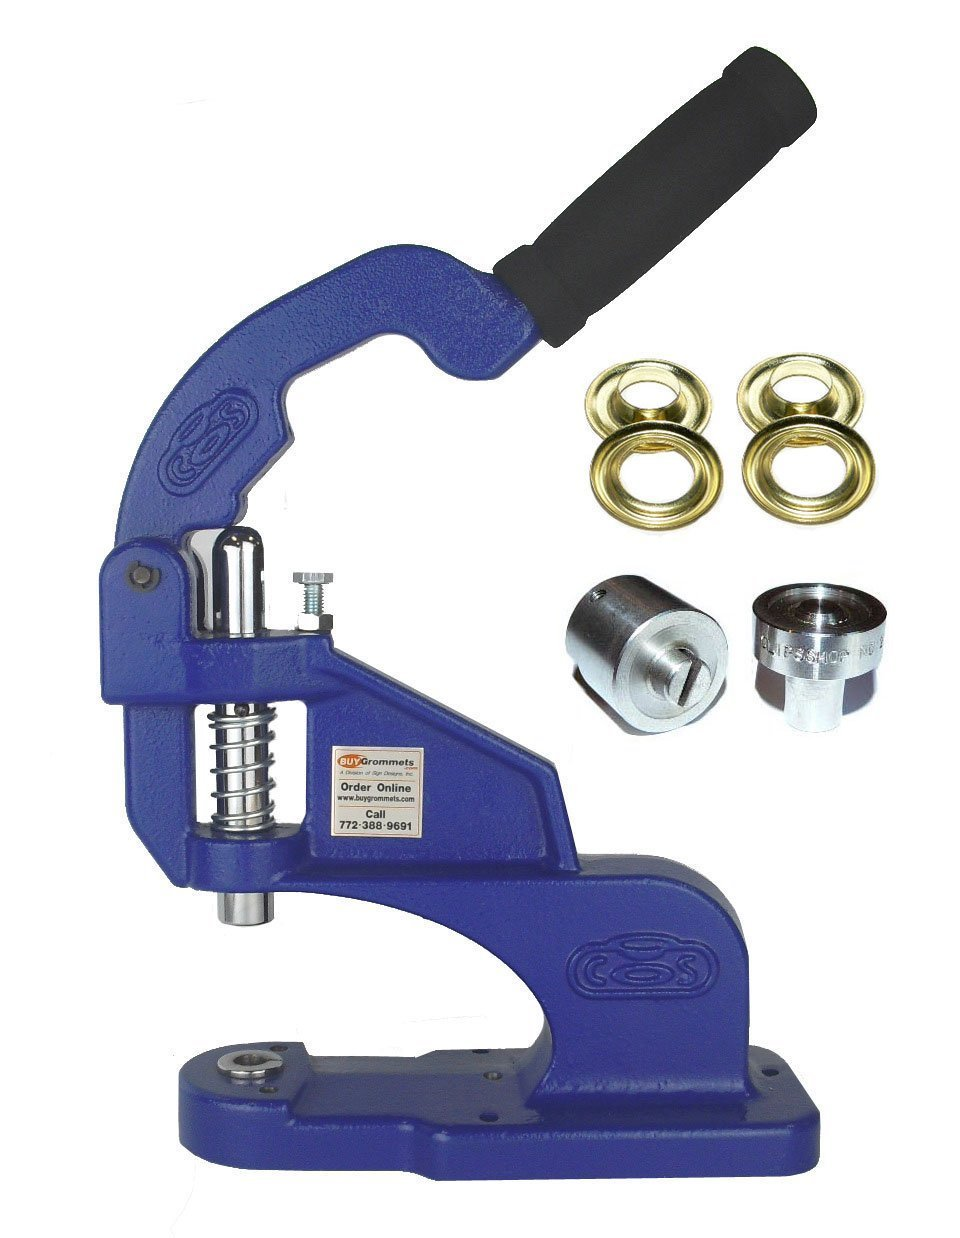 ClipsShop CSTEP-2 Grommet Machine Complete Kit Includes #3 7/16'' Brass Grommets Qty 500 & #3 7/16'' Stainless Steel Die Set